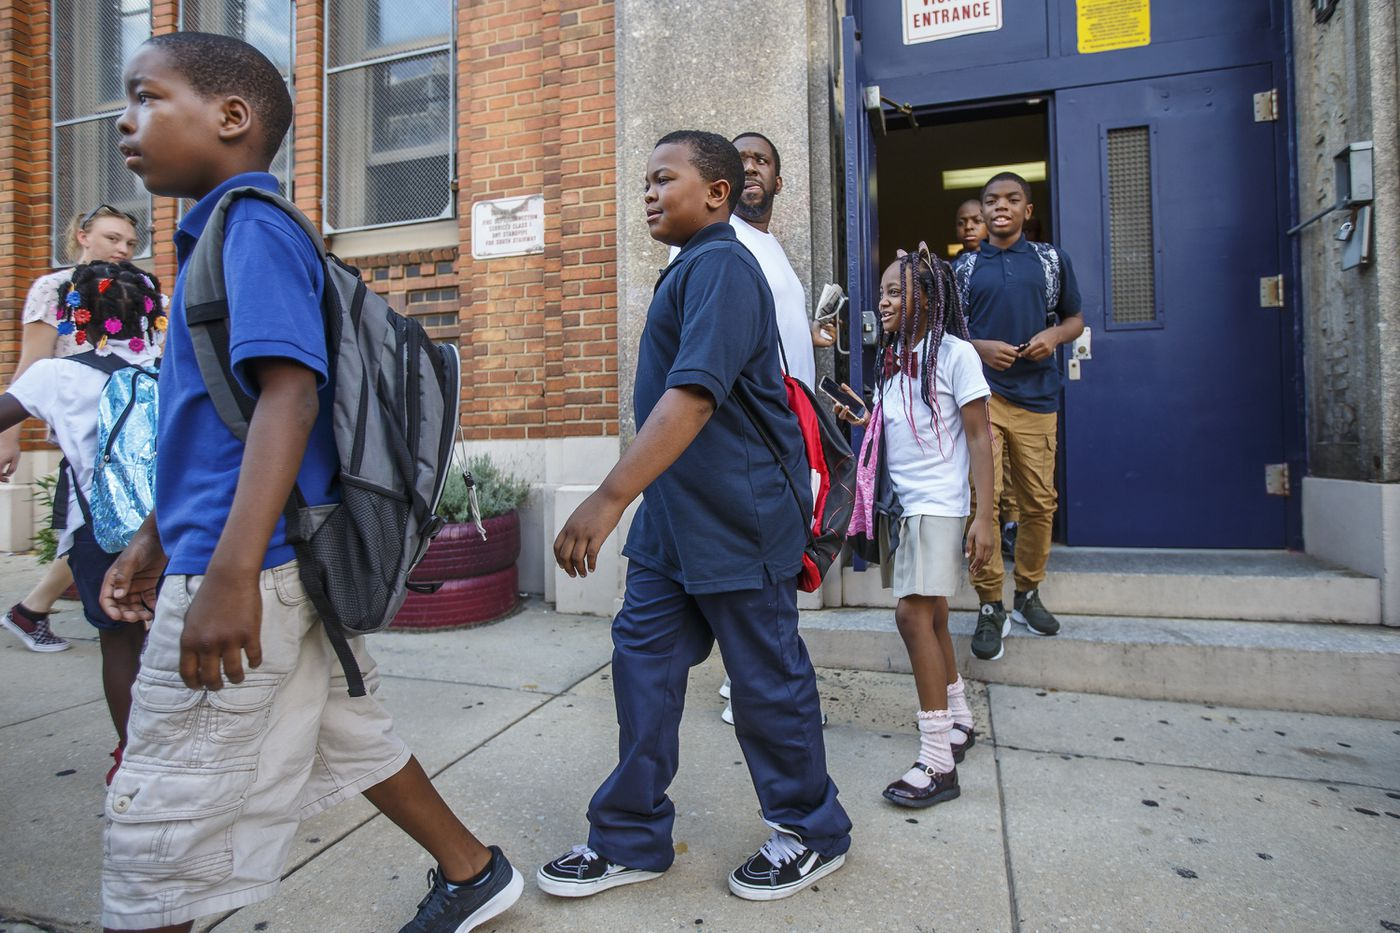 How Philly's overheated schools show disregard for our students | Mike Newall